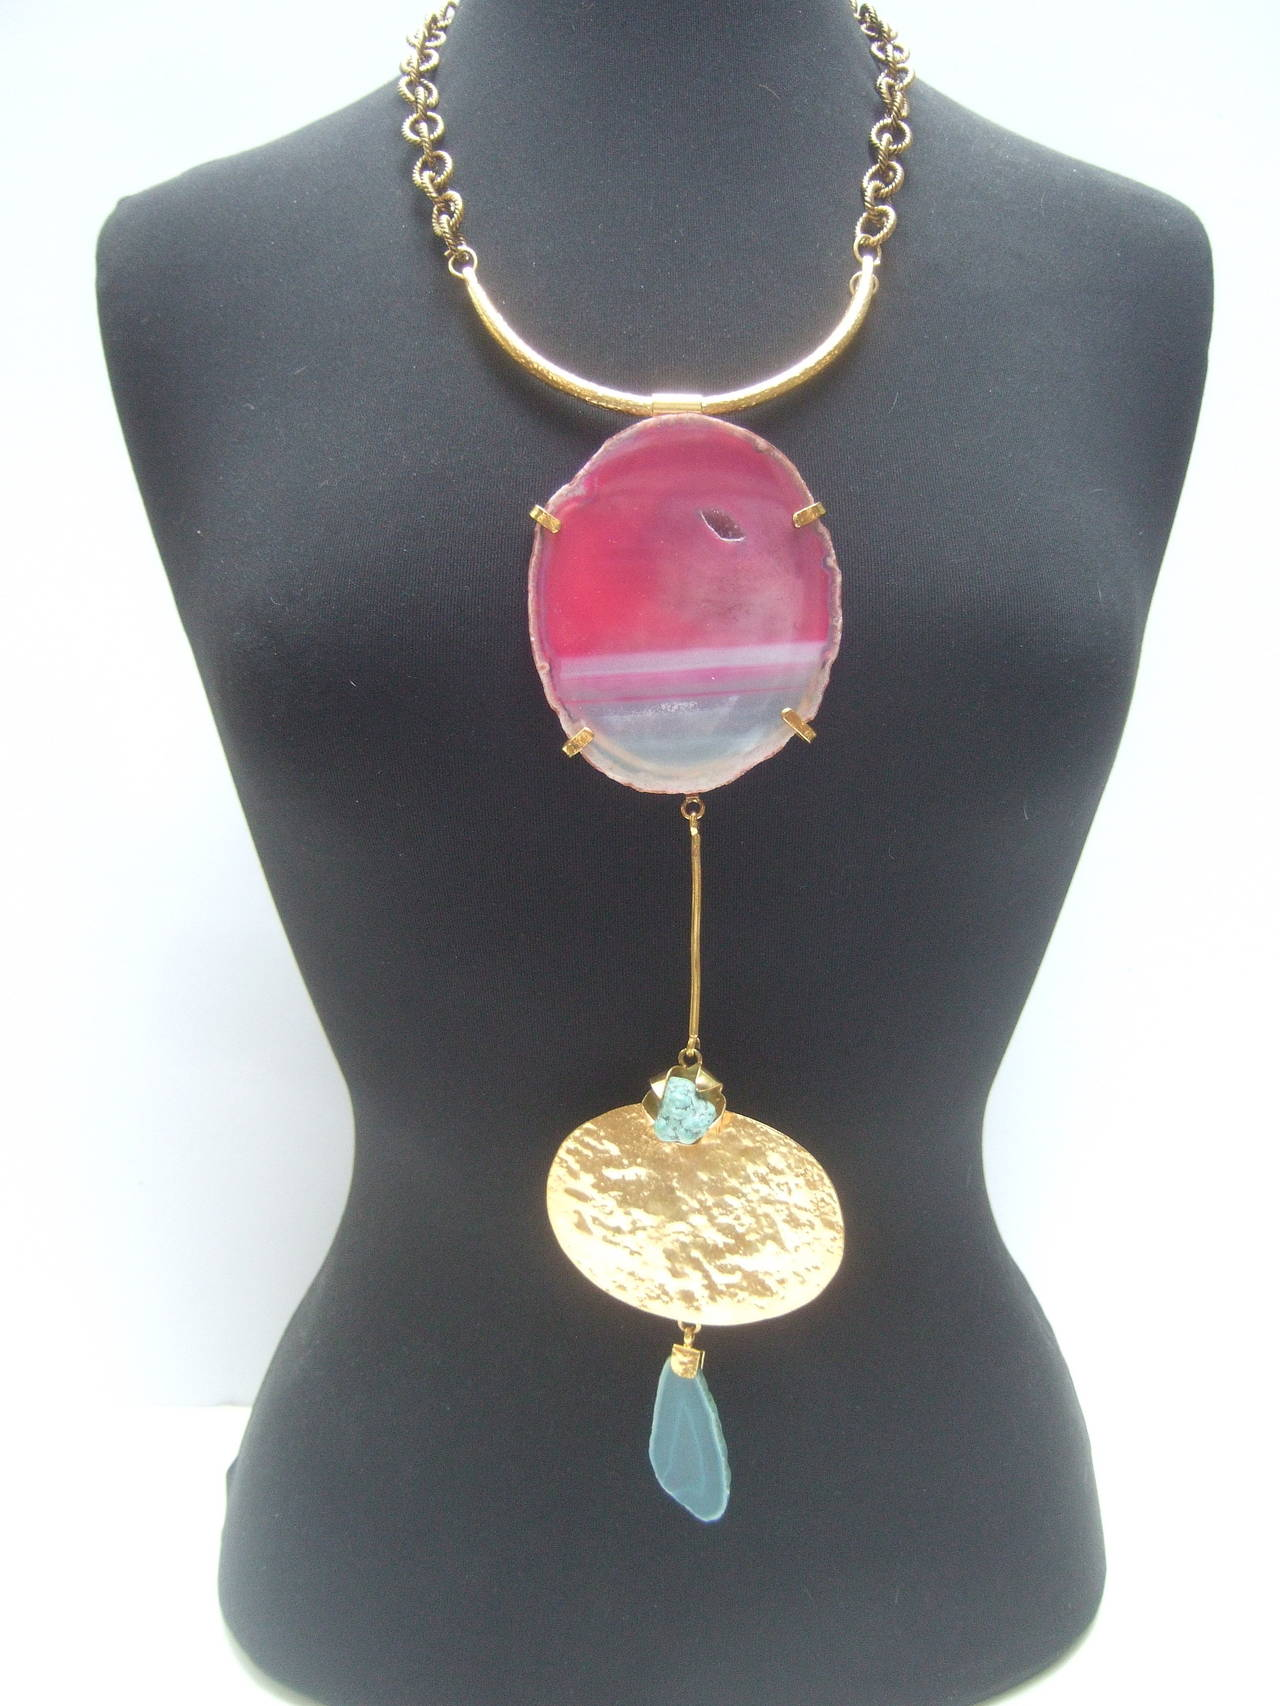 Phillipe Ferrandis Paris Magnificent agate pendant necklace c 1990